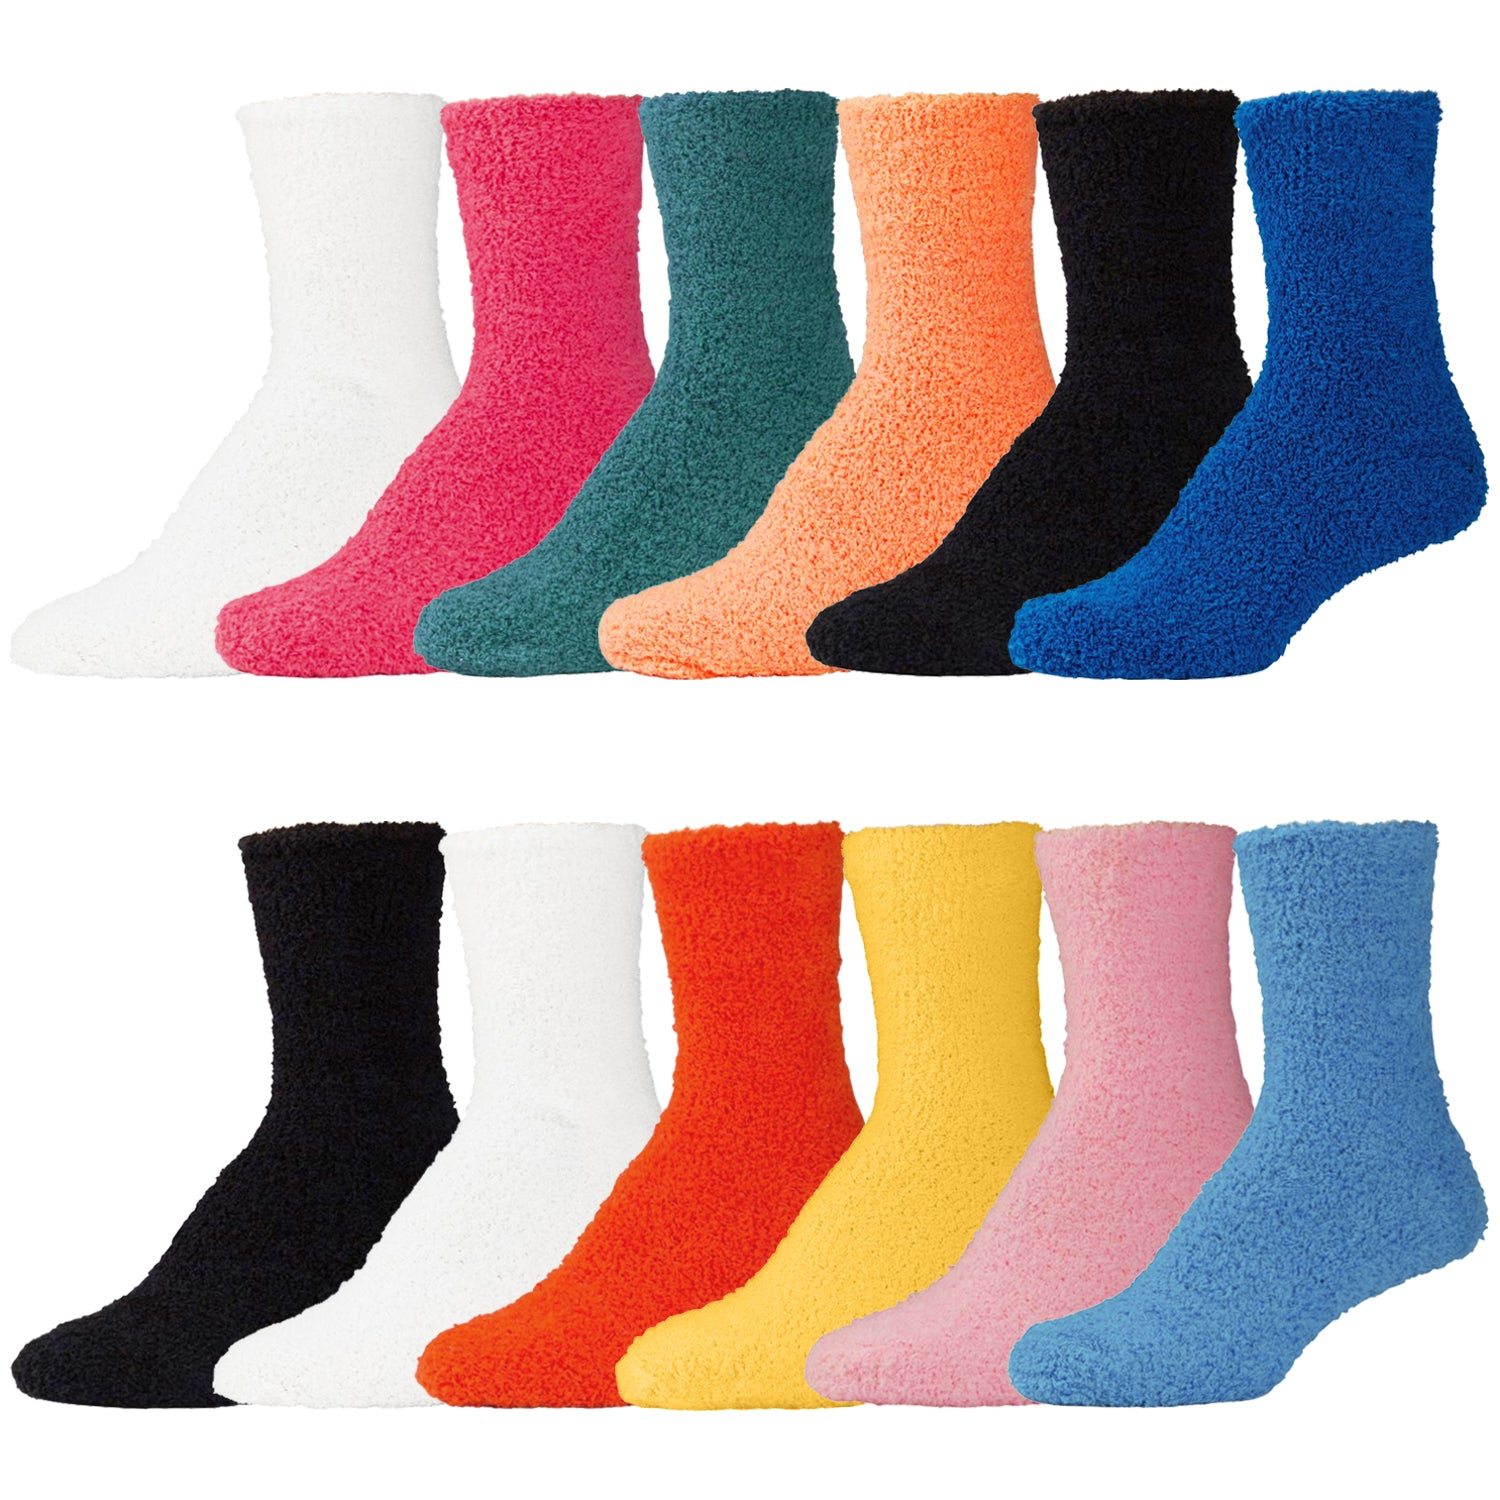 Womens Multicolored Fluffy Fuzzy Slipper Socks - 12 Pairs